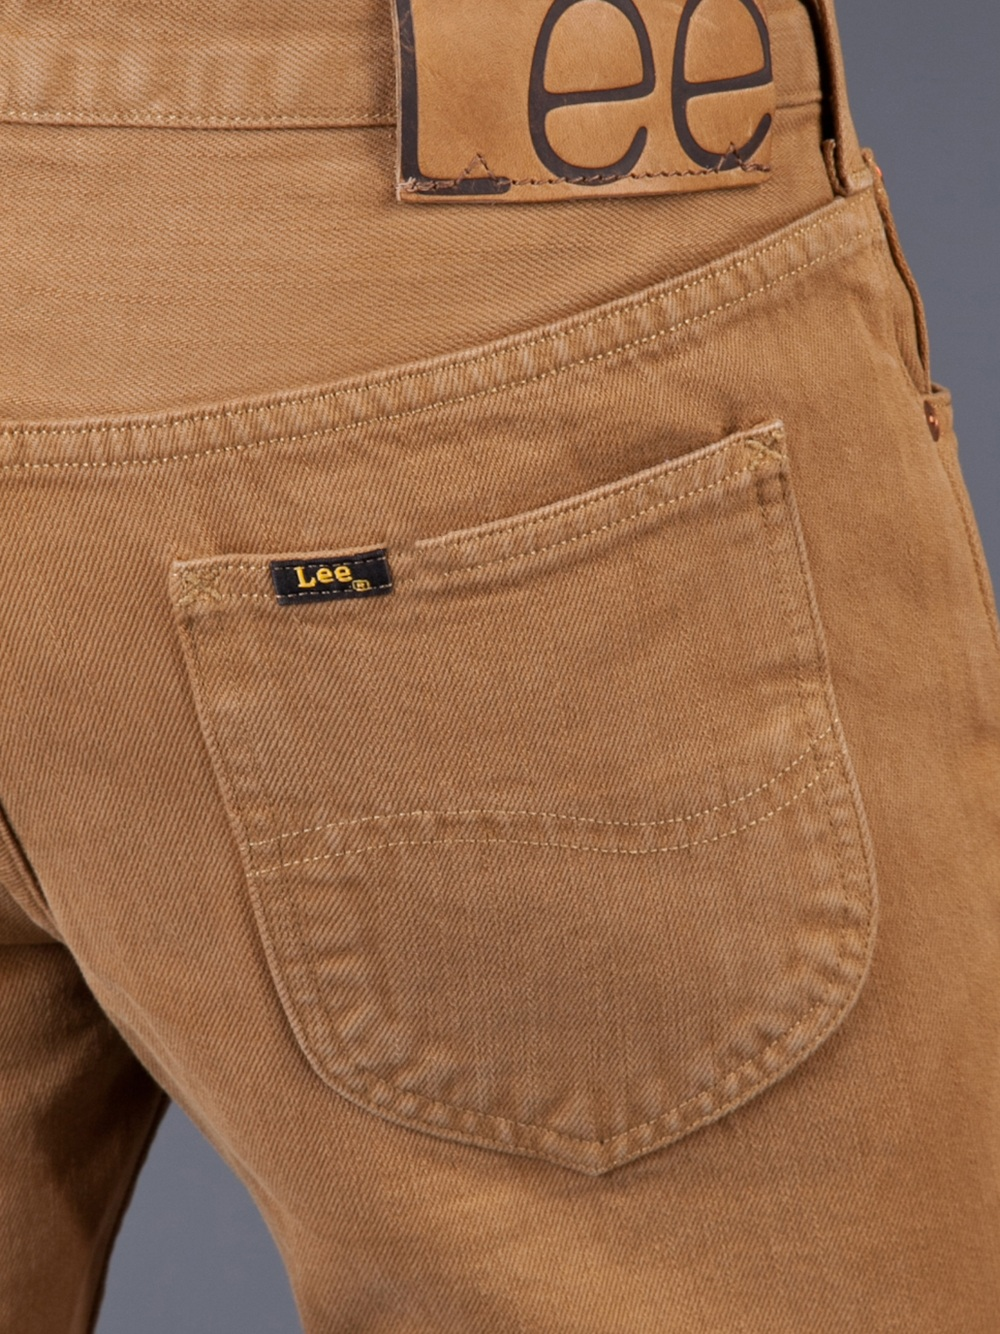 Lyst Lee Jeans 102 S Jean In Brown For Men